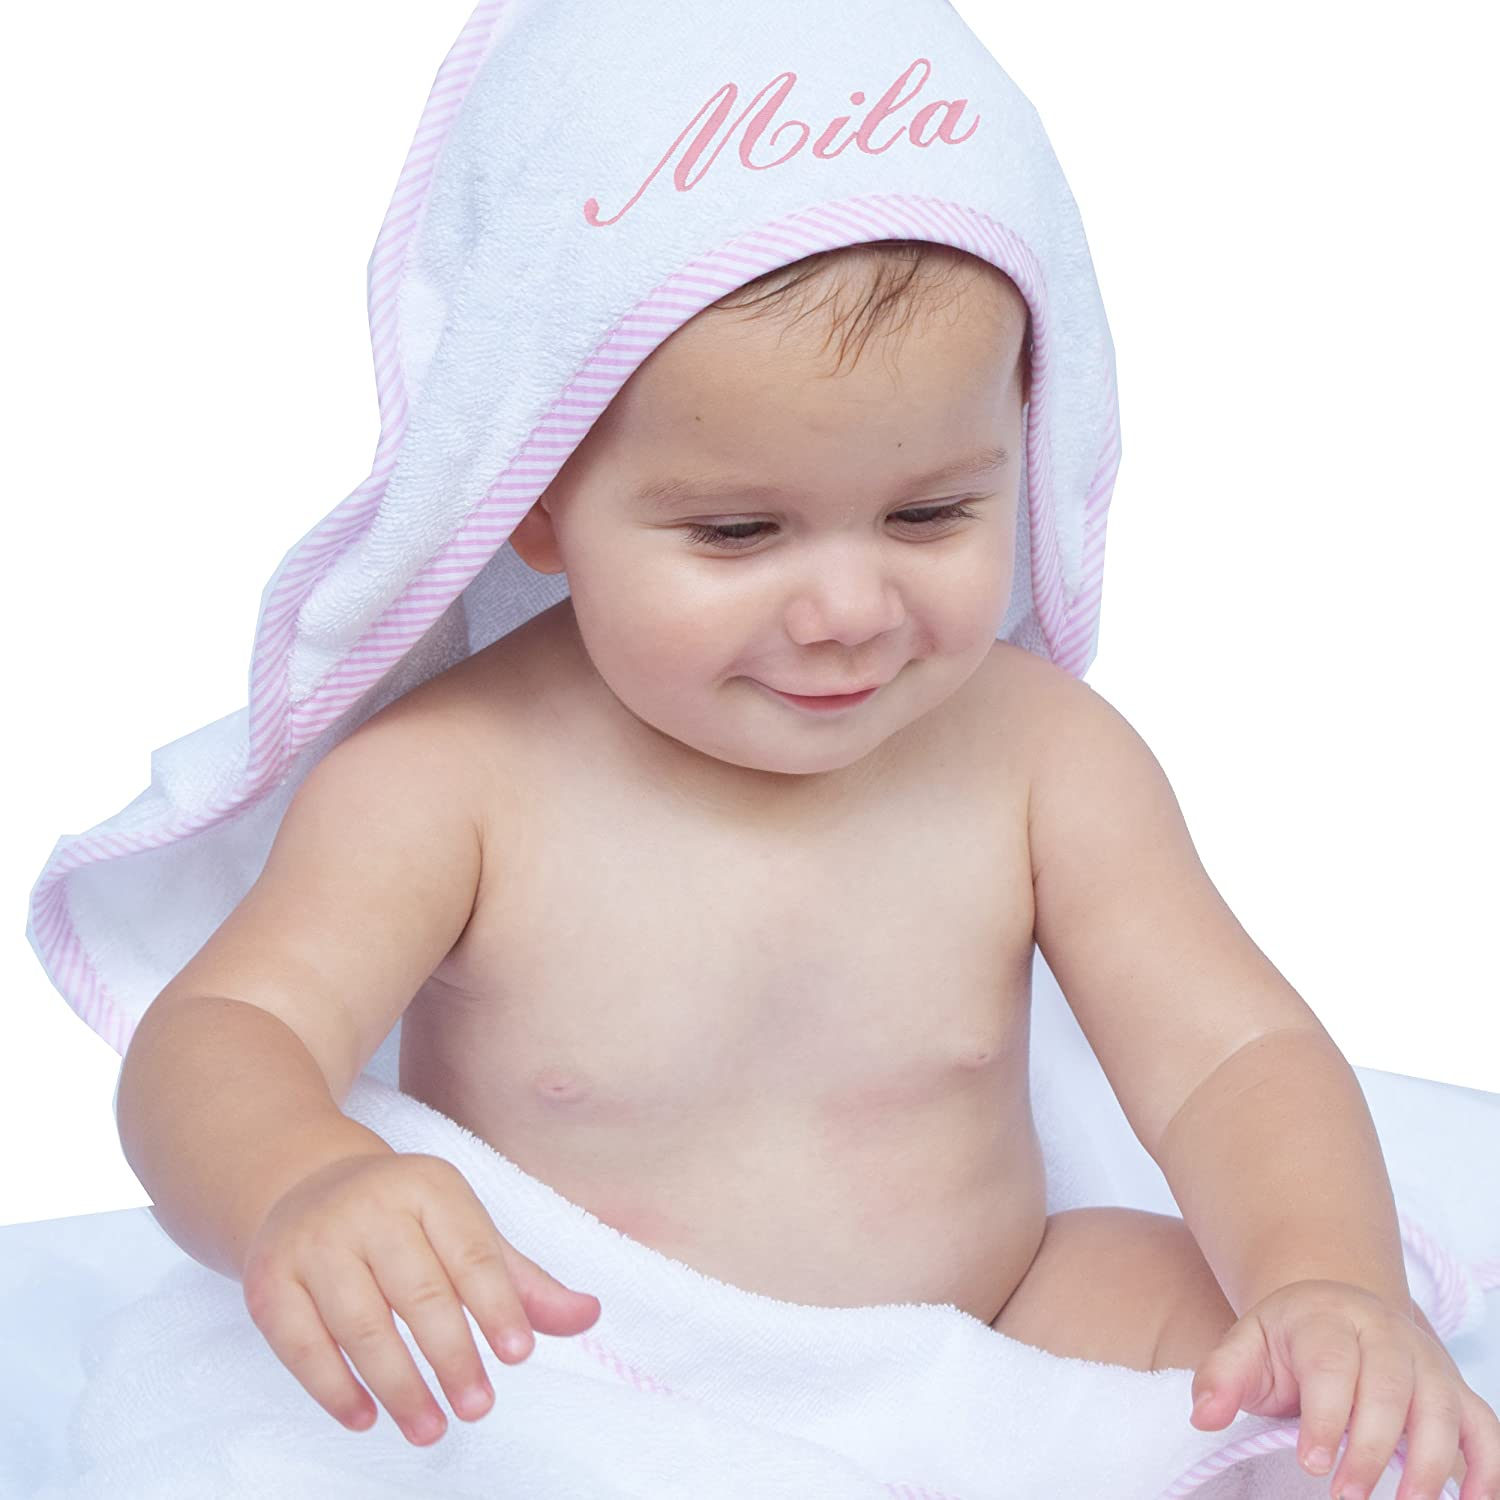 Personalized Baby Hooded Bath Towel - Girl Gifts Monogrammed Quality inspection for and B